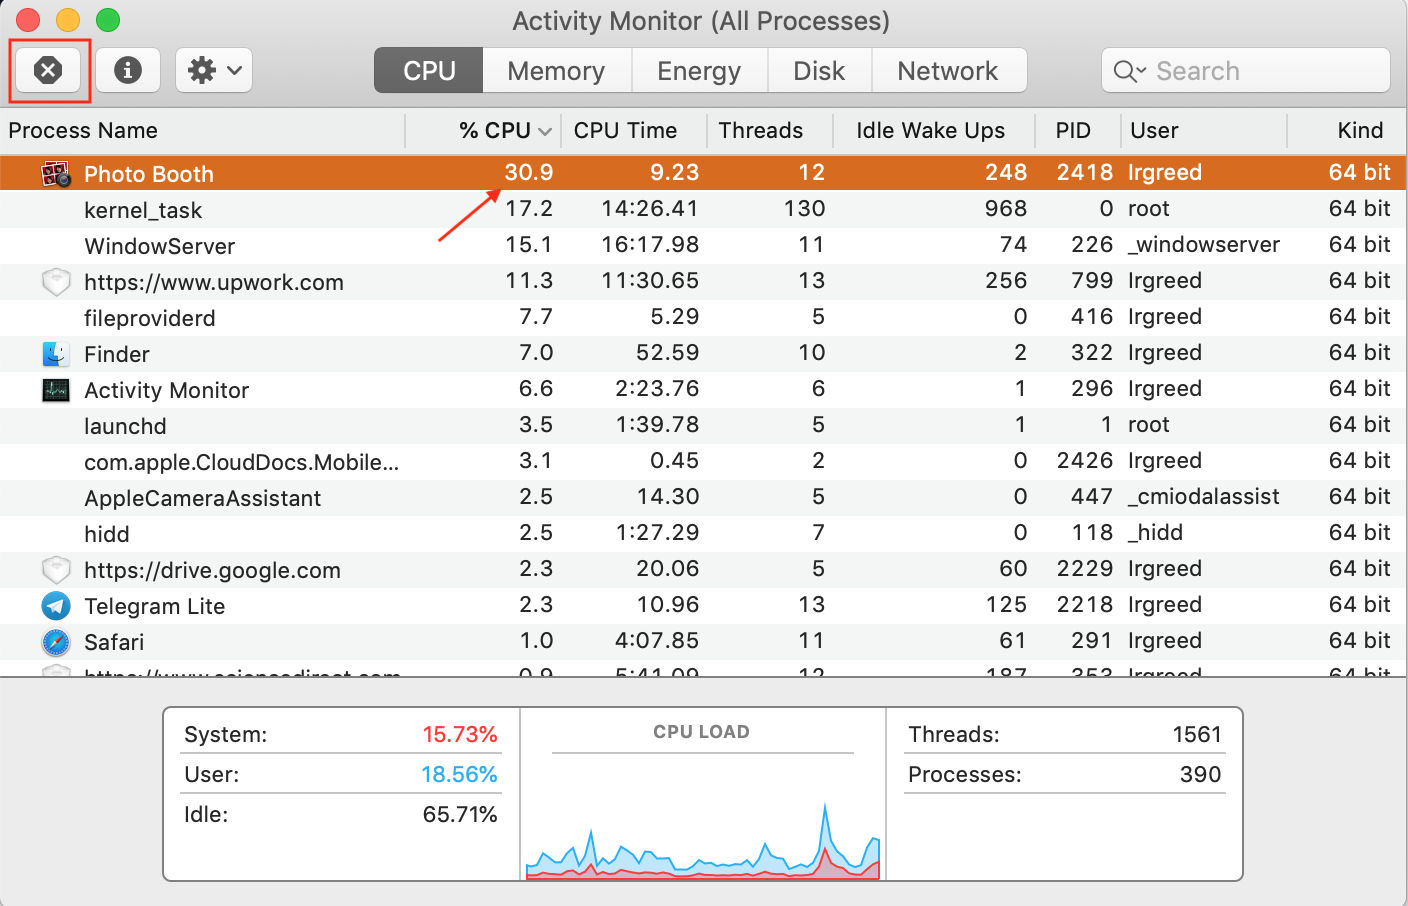 photo booth app showing high CPU in activity monitor recommended to quit